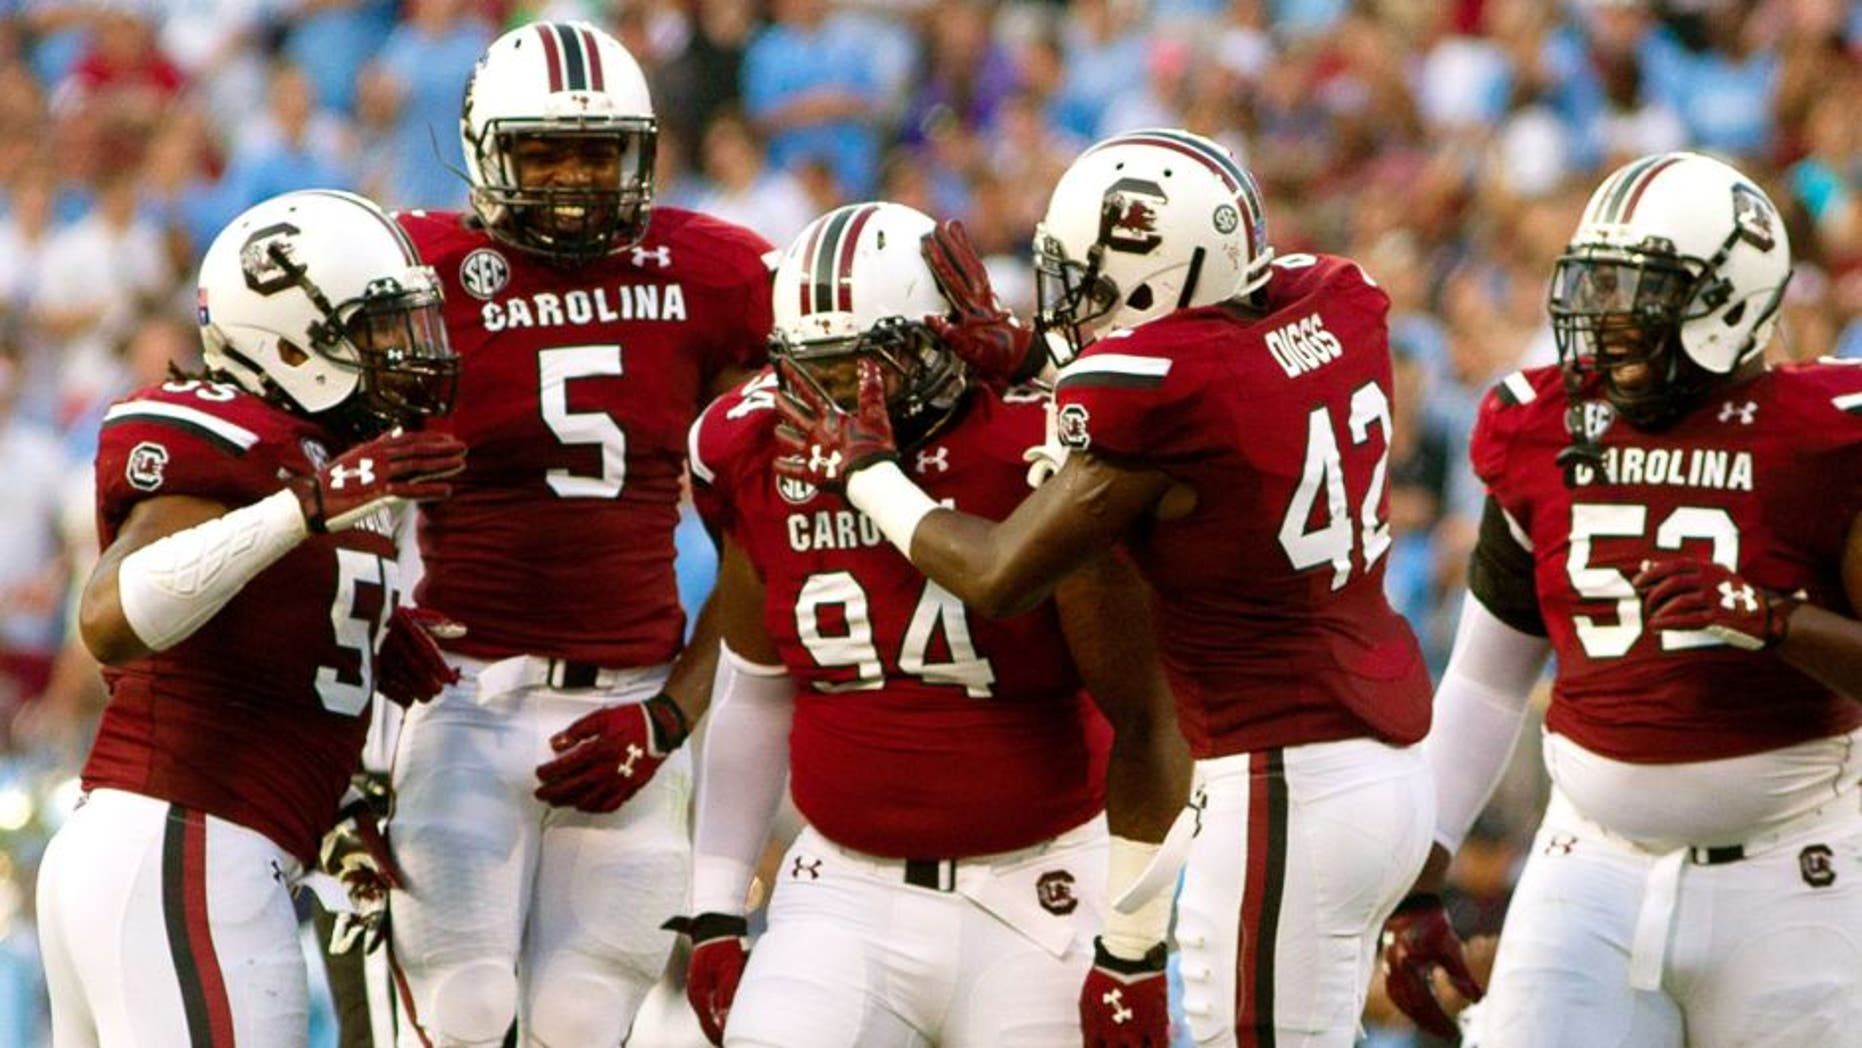 Sep 3, 2015; Charlotte, NC, USA; South Carolina Gamecocks defensive tackle Kelsey Griffin (94) celebrates with teammates during the second quarter against the North Carolina Tar Heels at Bank of America Stadium. Mandatory Credit: Joshua S. Kelly-USA TODAY Sports